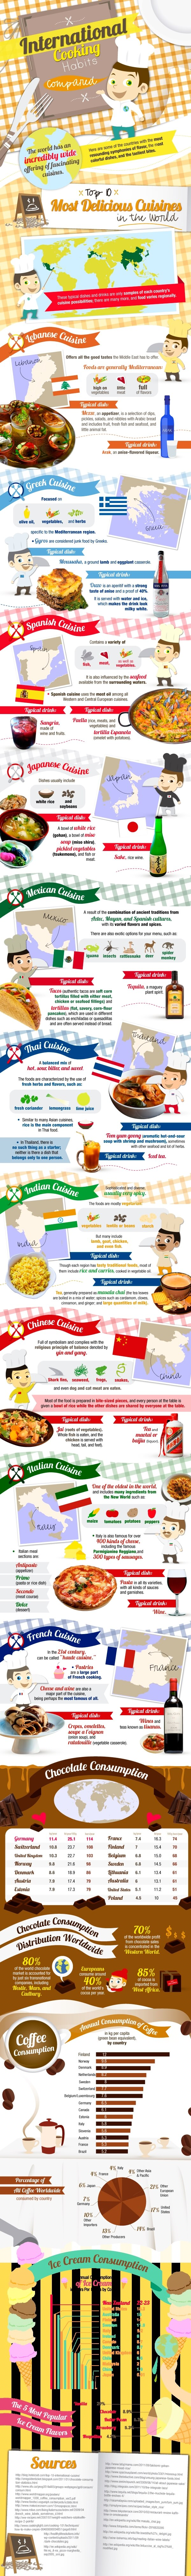 Infographic International Cooking Habits Compared